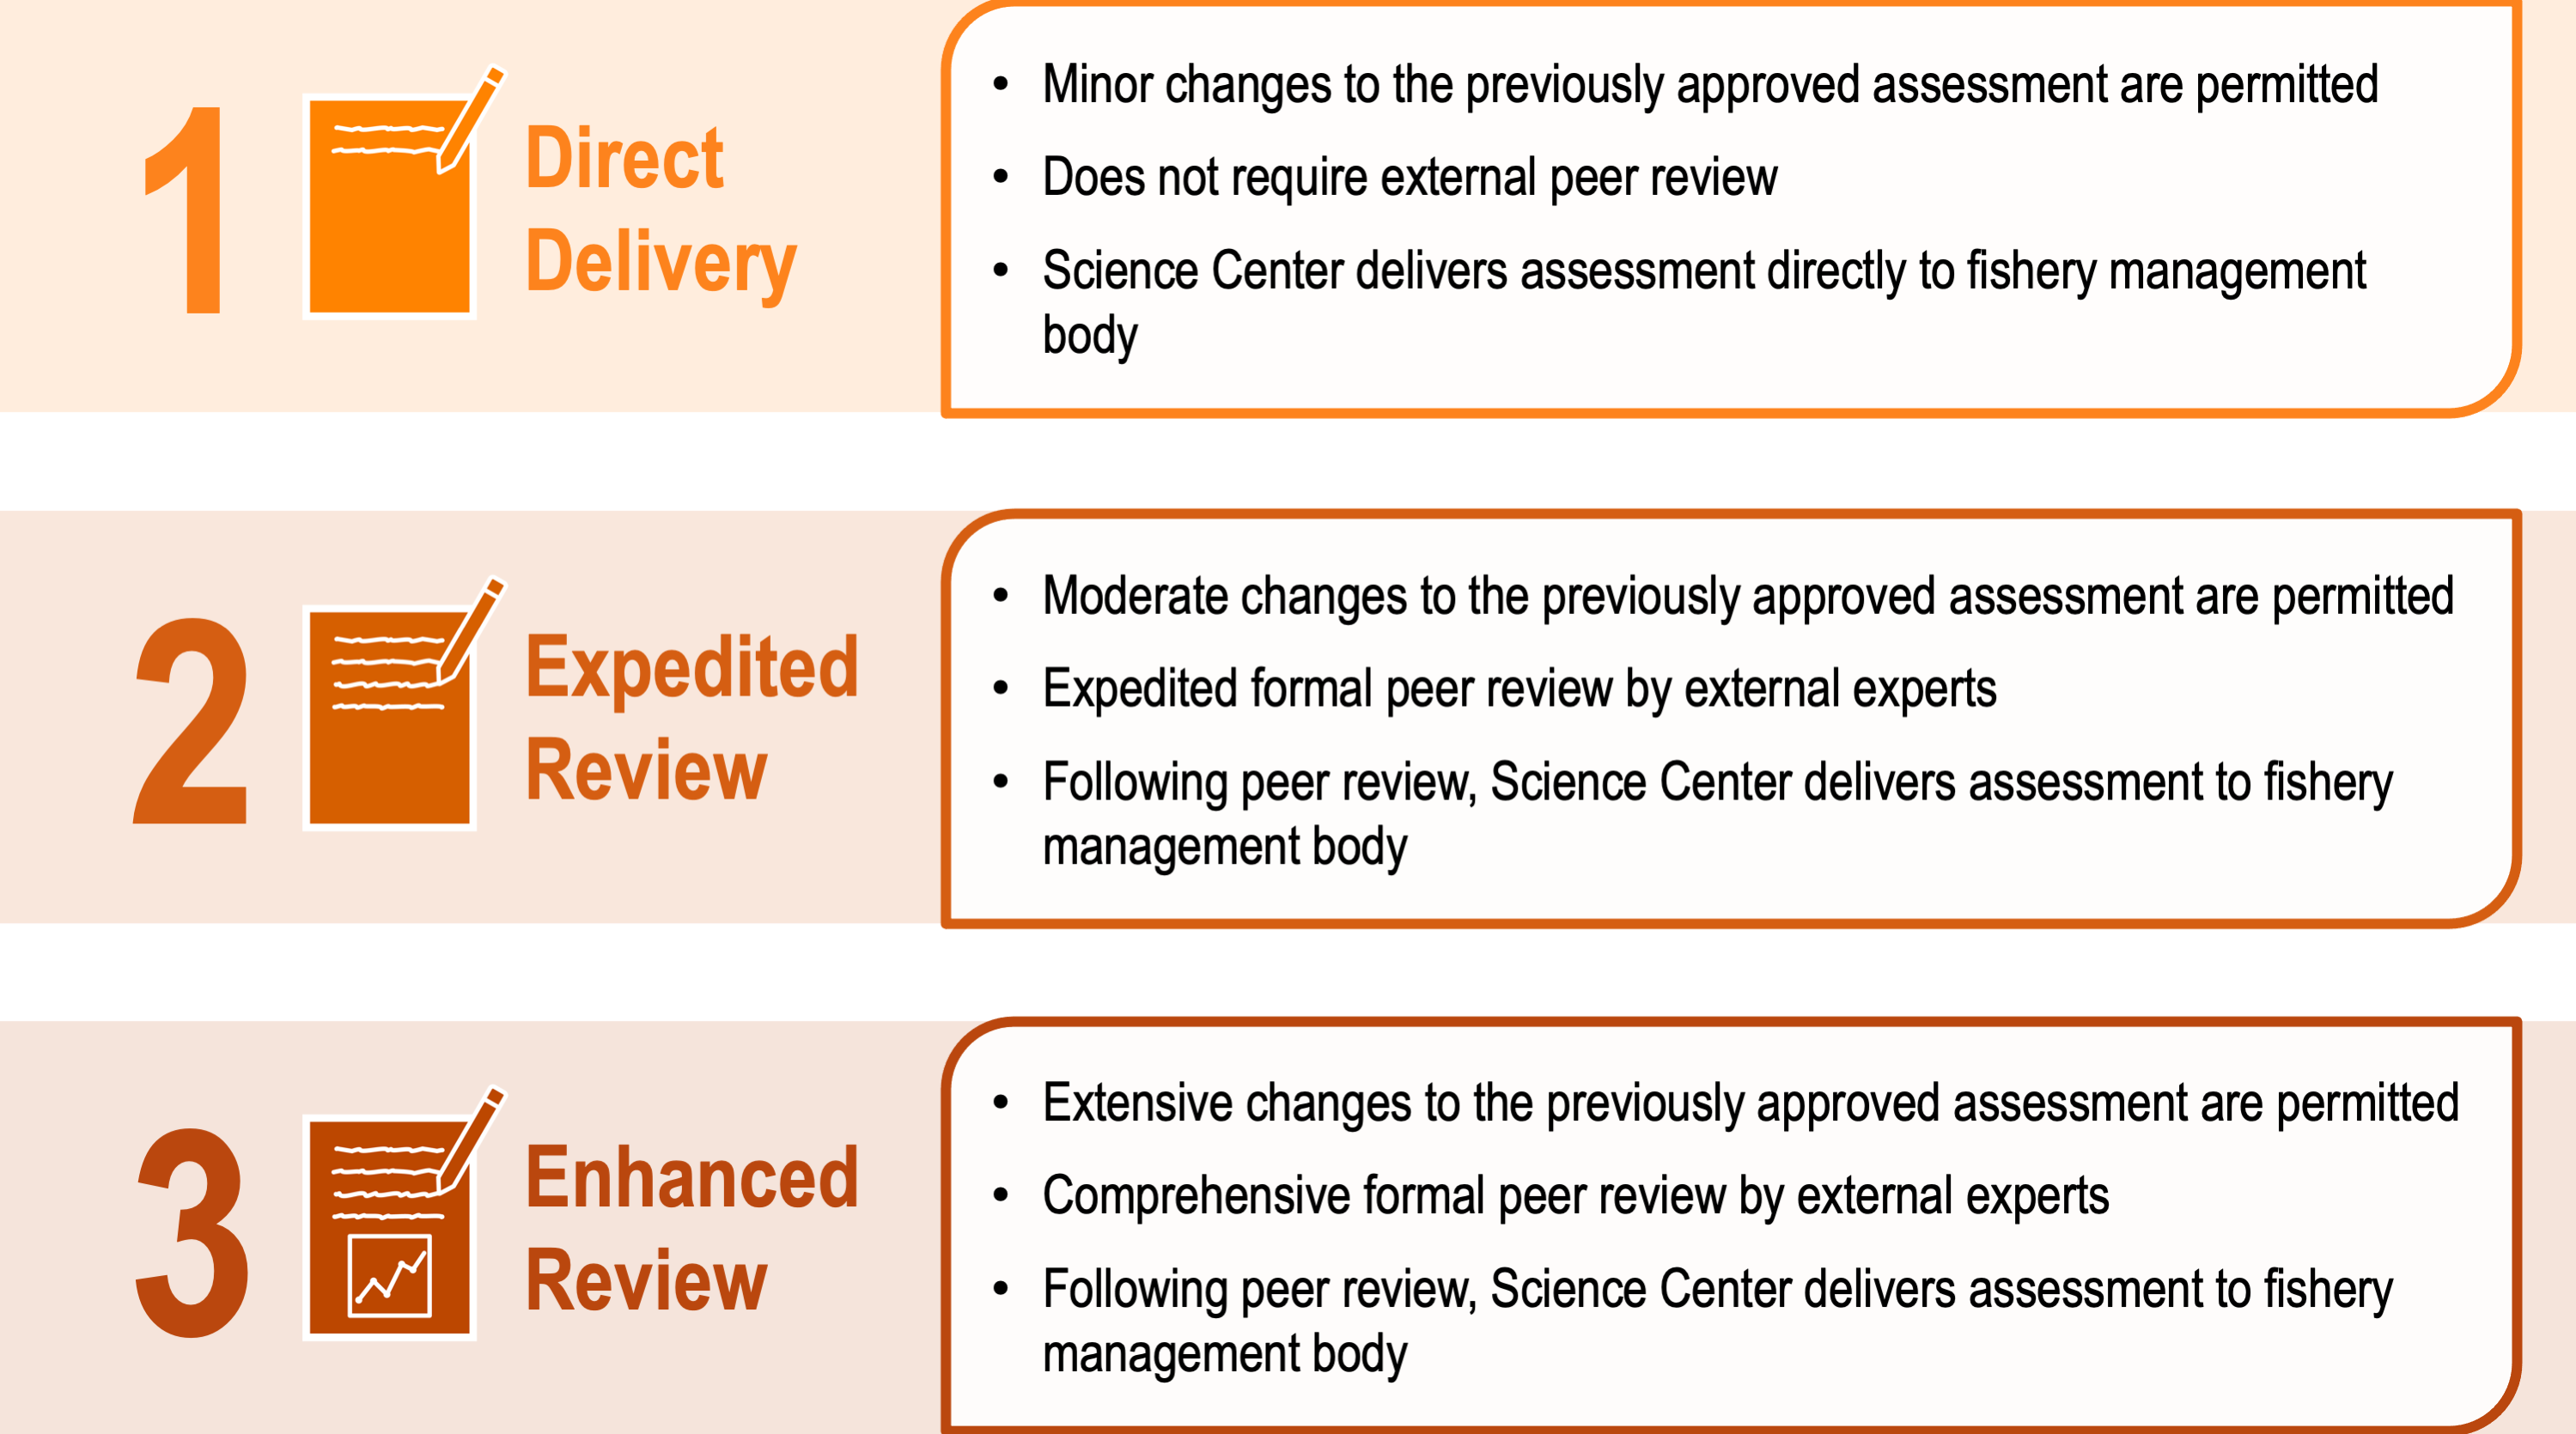 This graphic explains the differences between the three levels of review for management track fisheries stock assessments: Level 1. Direct Delivery, Level 2. Expedited Review, and Level 3. Enhanced Review. There are small icons for each level of review. The icon for the first level shows a pencil and paper with a few lines of text to represent minor changes to the previously approved assessment, additional lines of text for the second level represents moderate changes and expedited formal peer review, and t